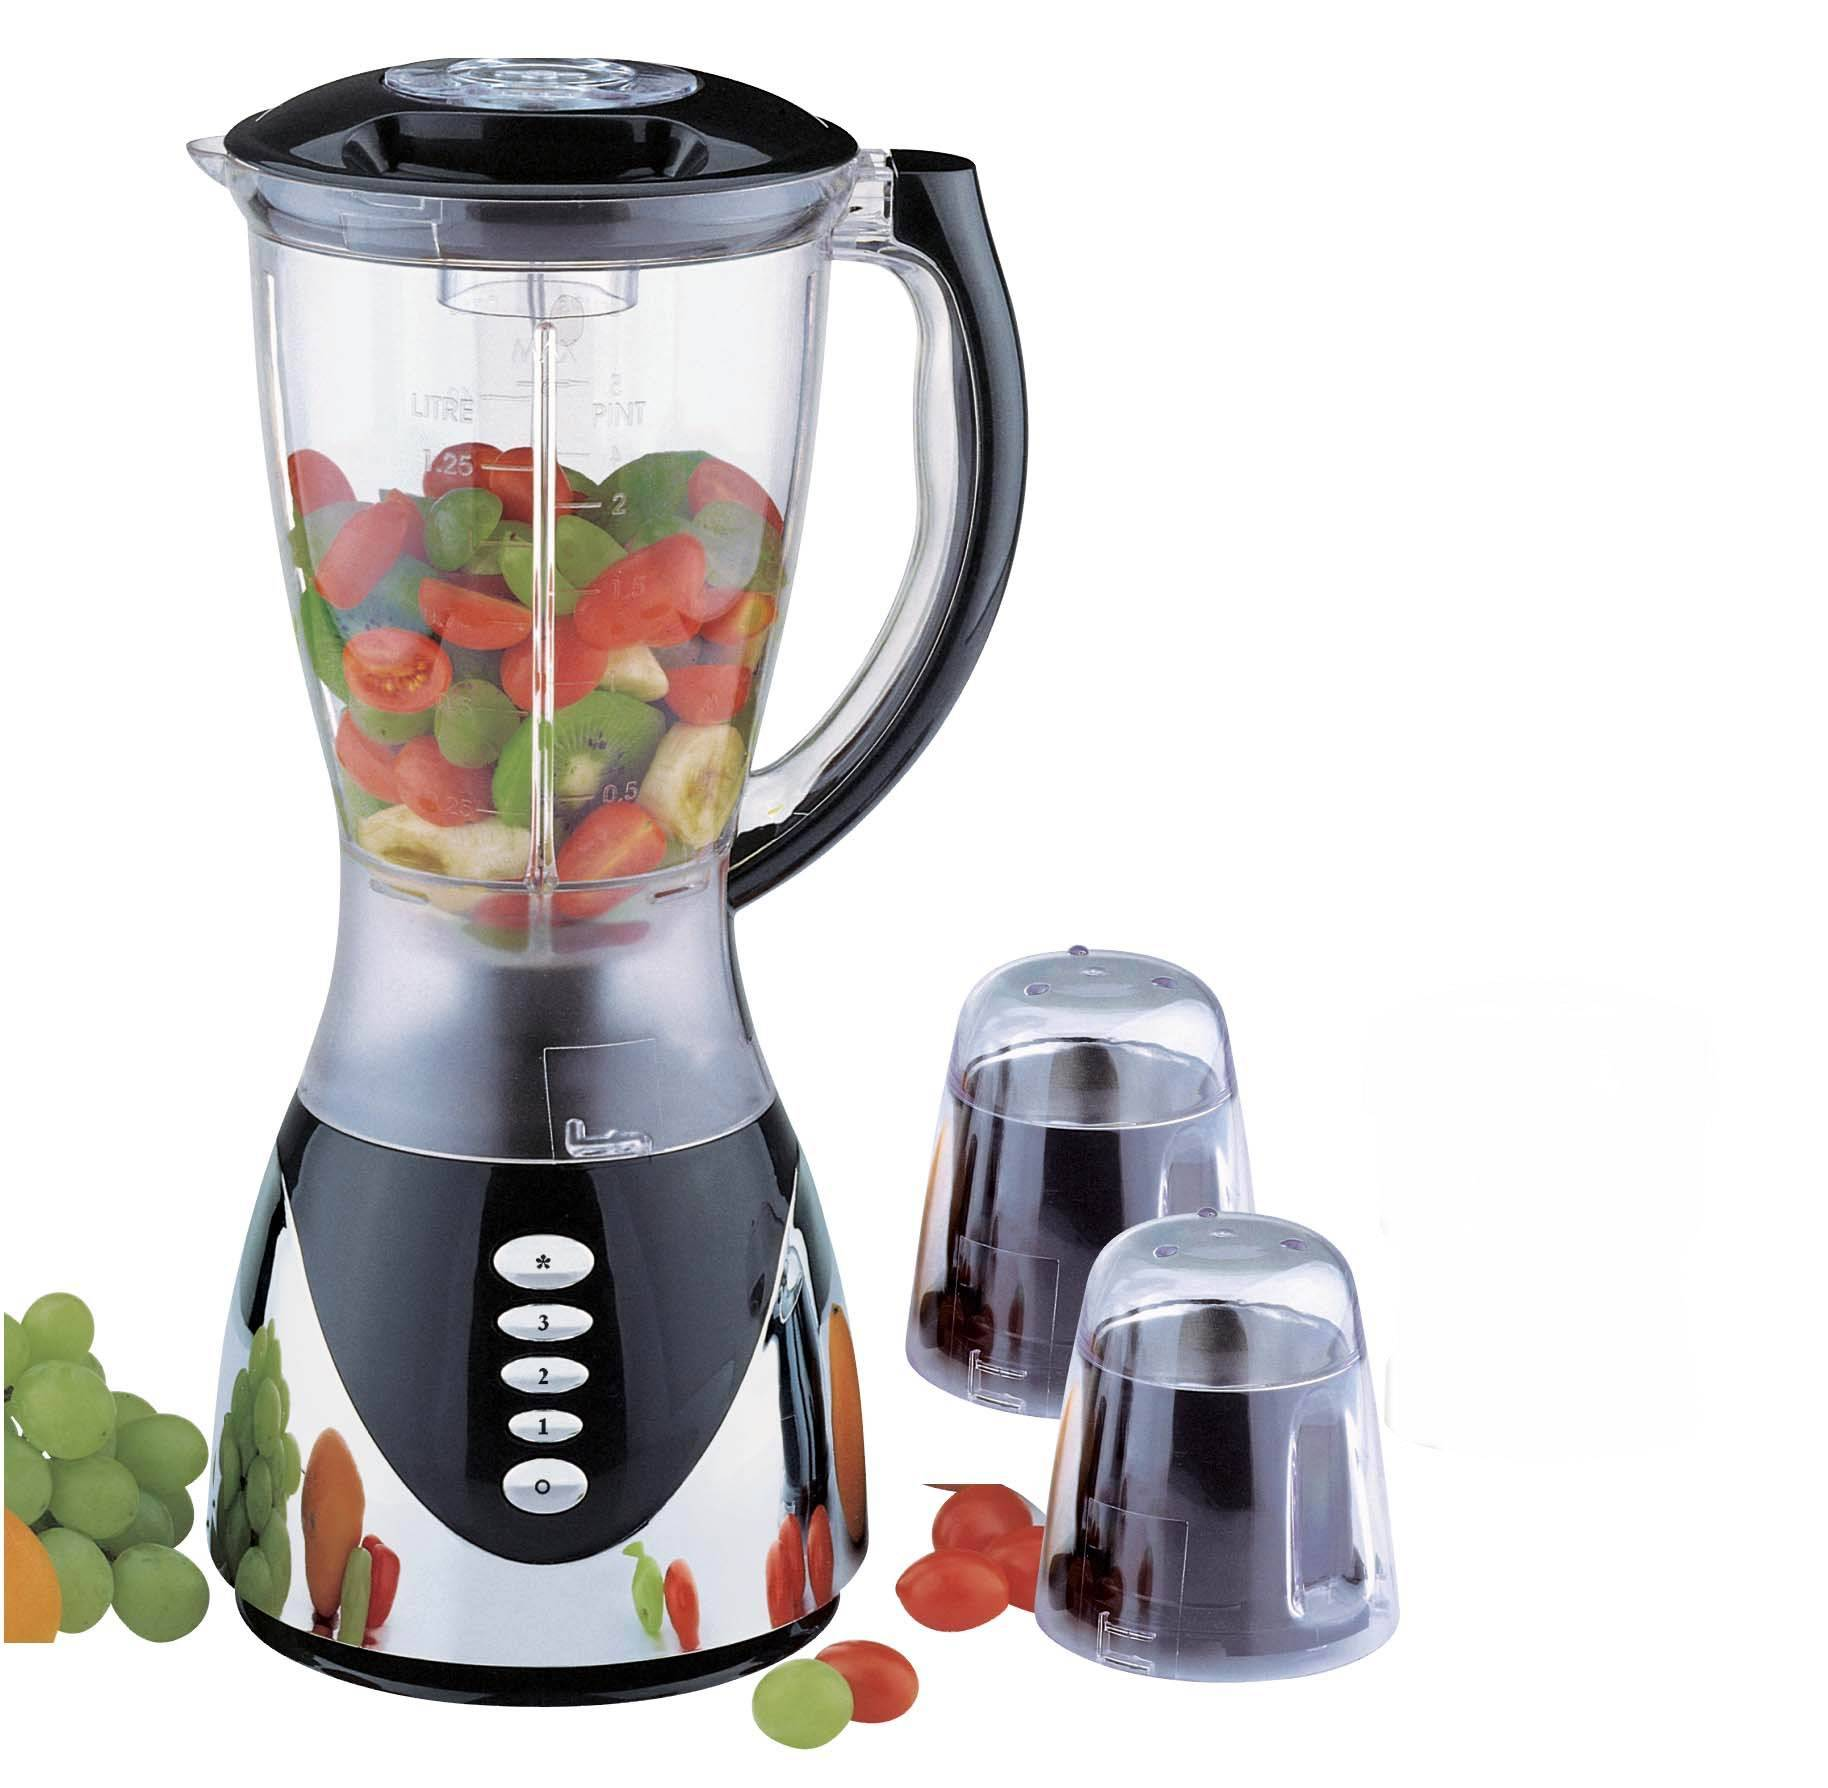 SUPER BLENDER IN 3 SPEEDS CONTROL